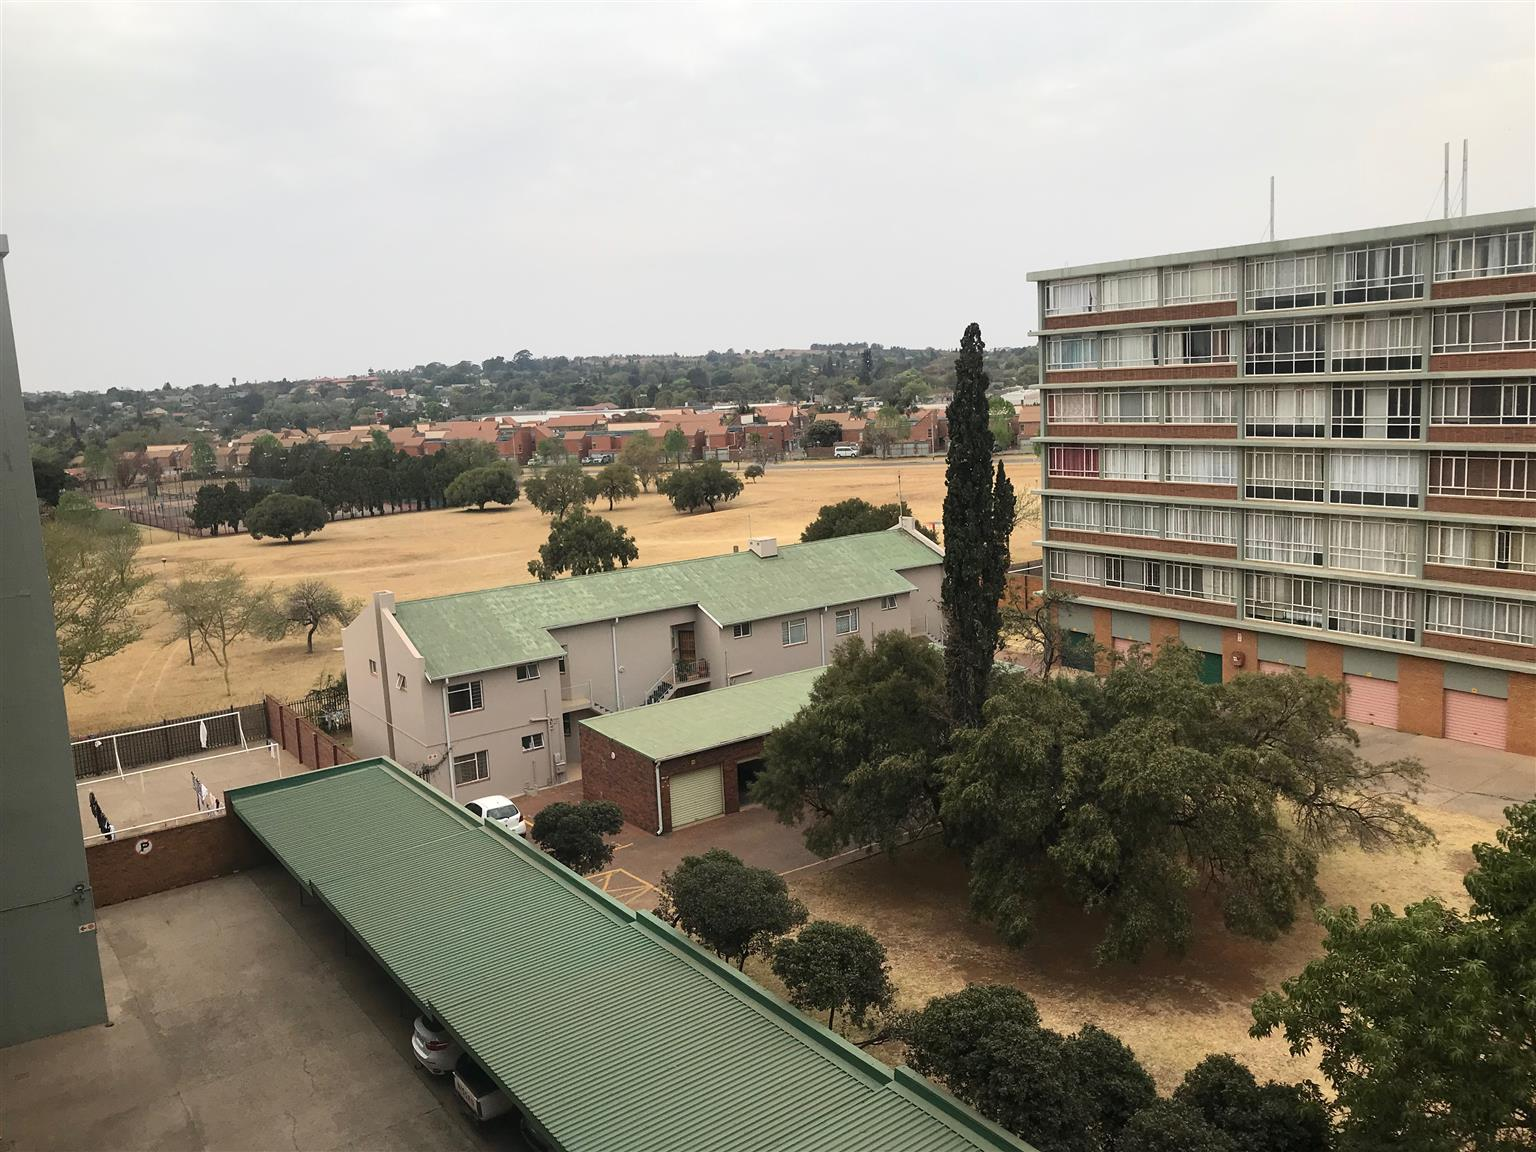 Pretoria-East: 2 1/2 Bedroom Flat with Undercover Parking in Elarduspark, Newly Renovated